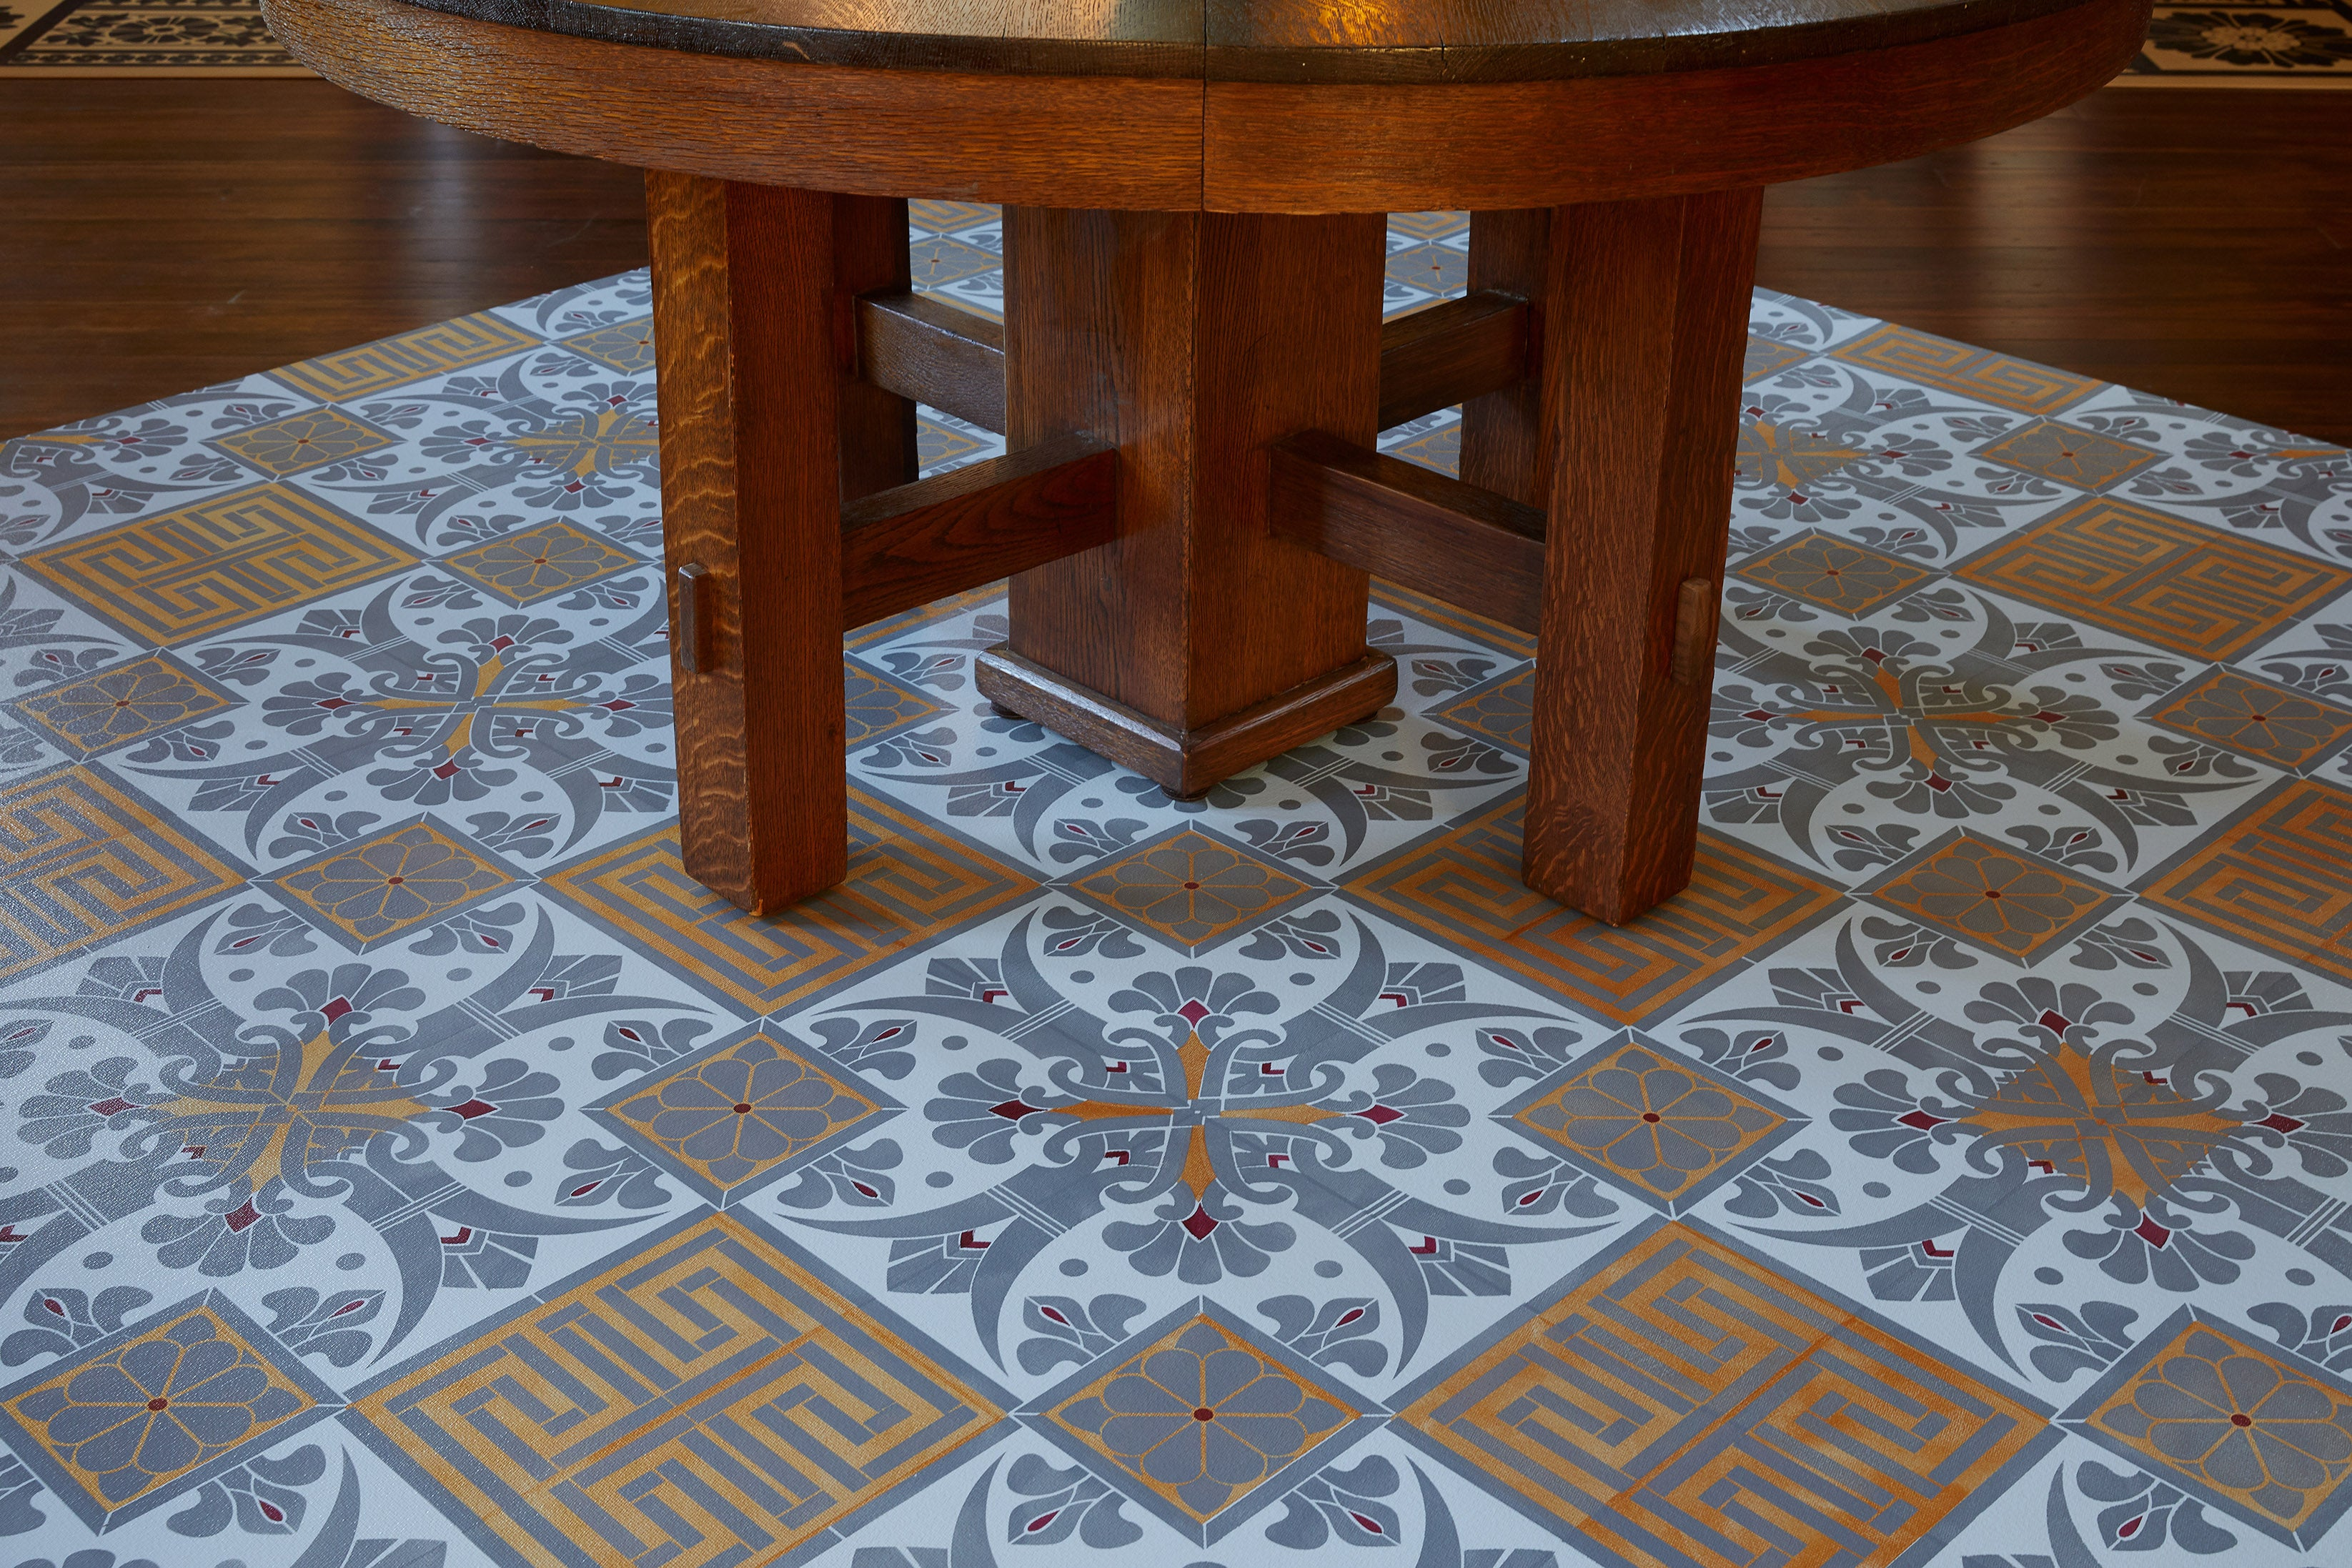 In-Situ image of this floocloth based on a Christopher Dresser pattern with Greek Key and Fleur de lis elements. Photo by Sally Painter.